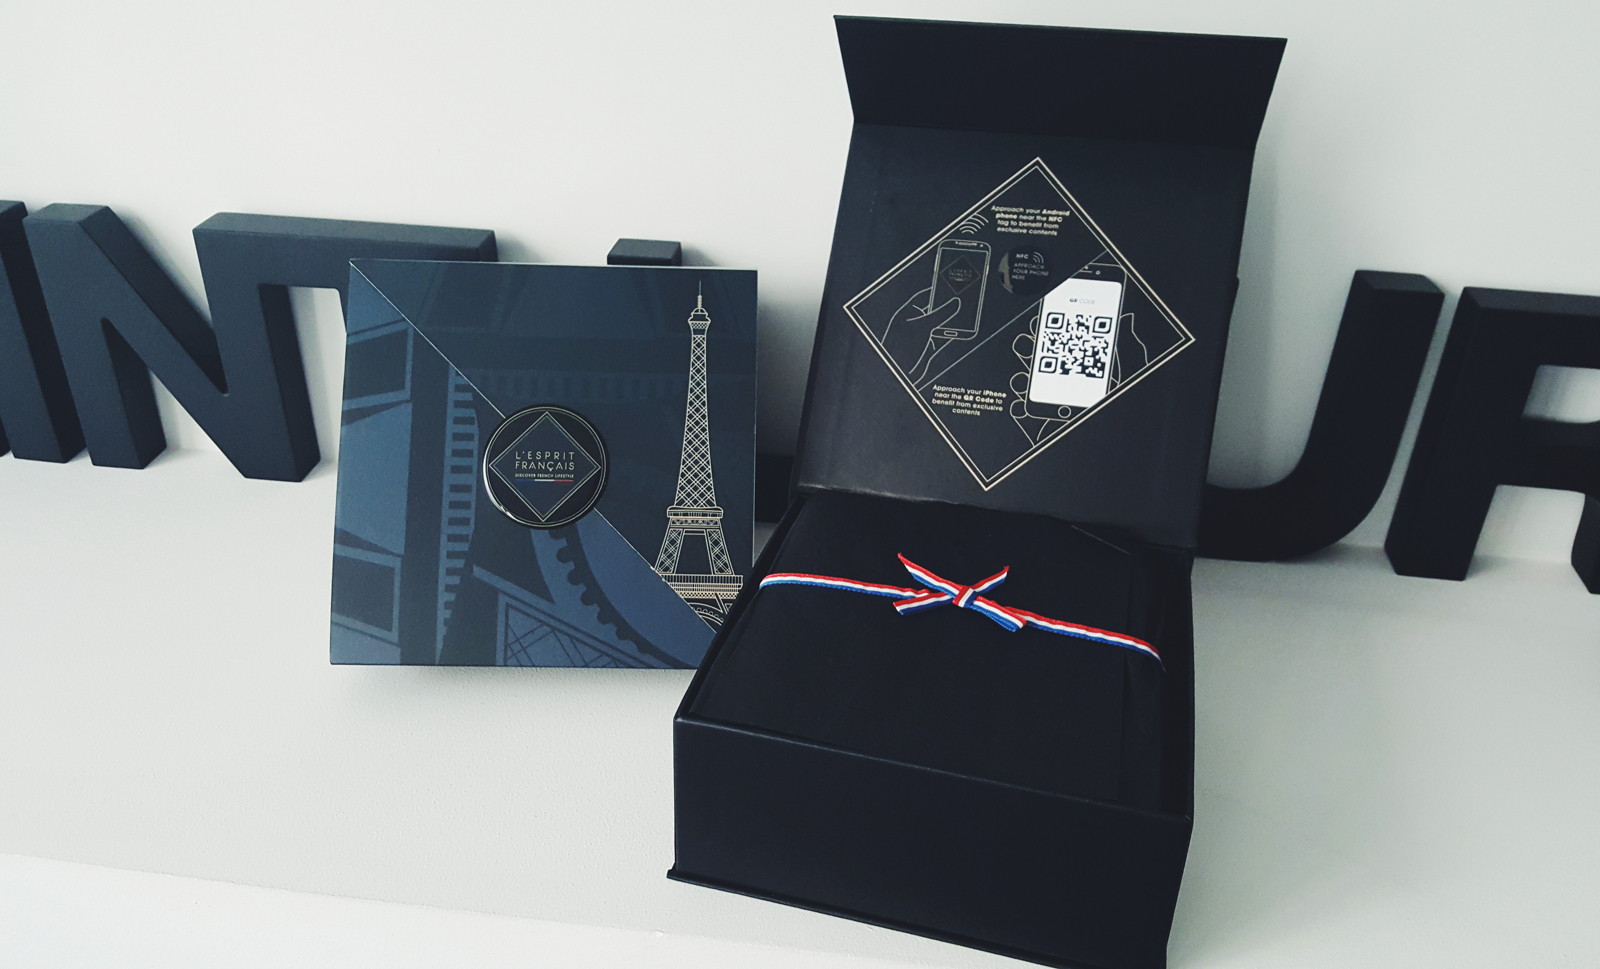 L esprit francais gift box collection Paris City Guide discover french style the best way experience the parisian lifestyle photo usofparis united states of paris blog